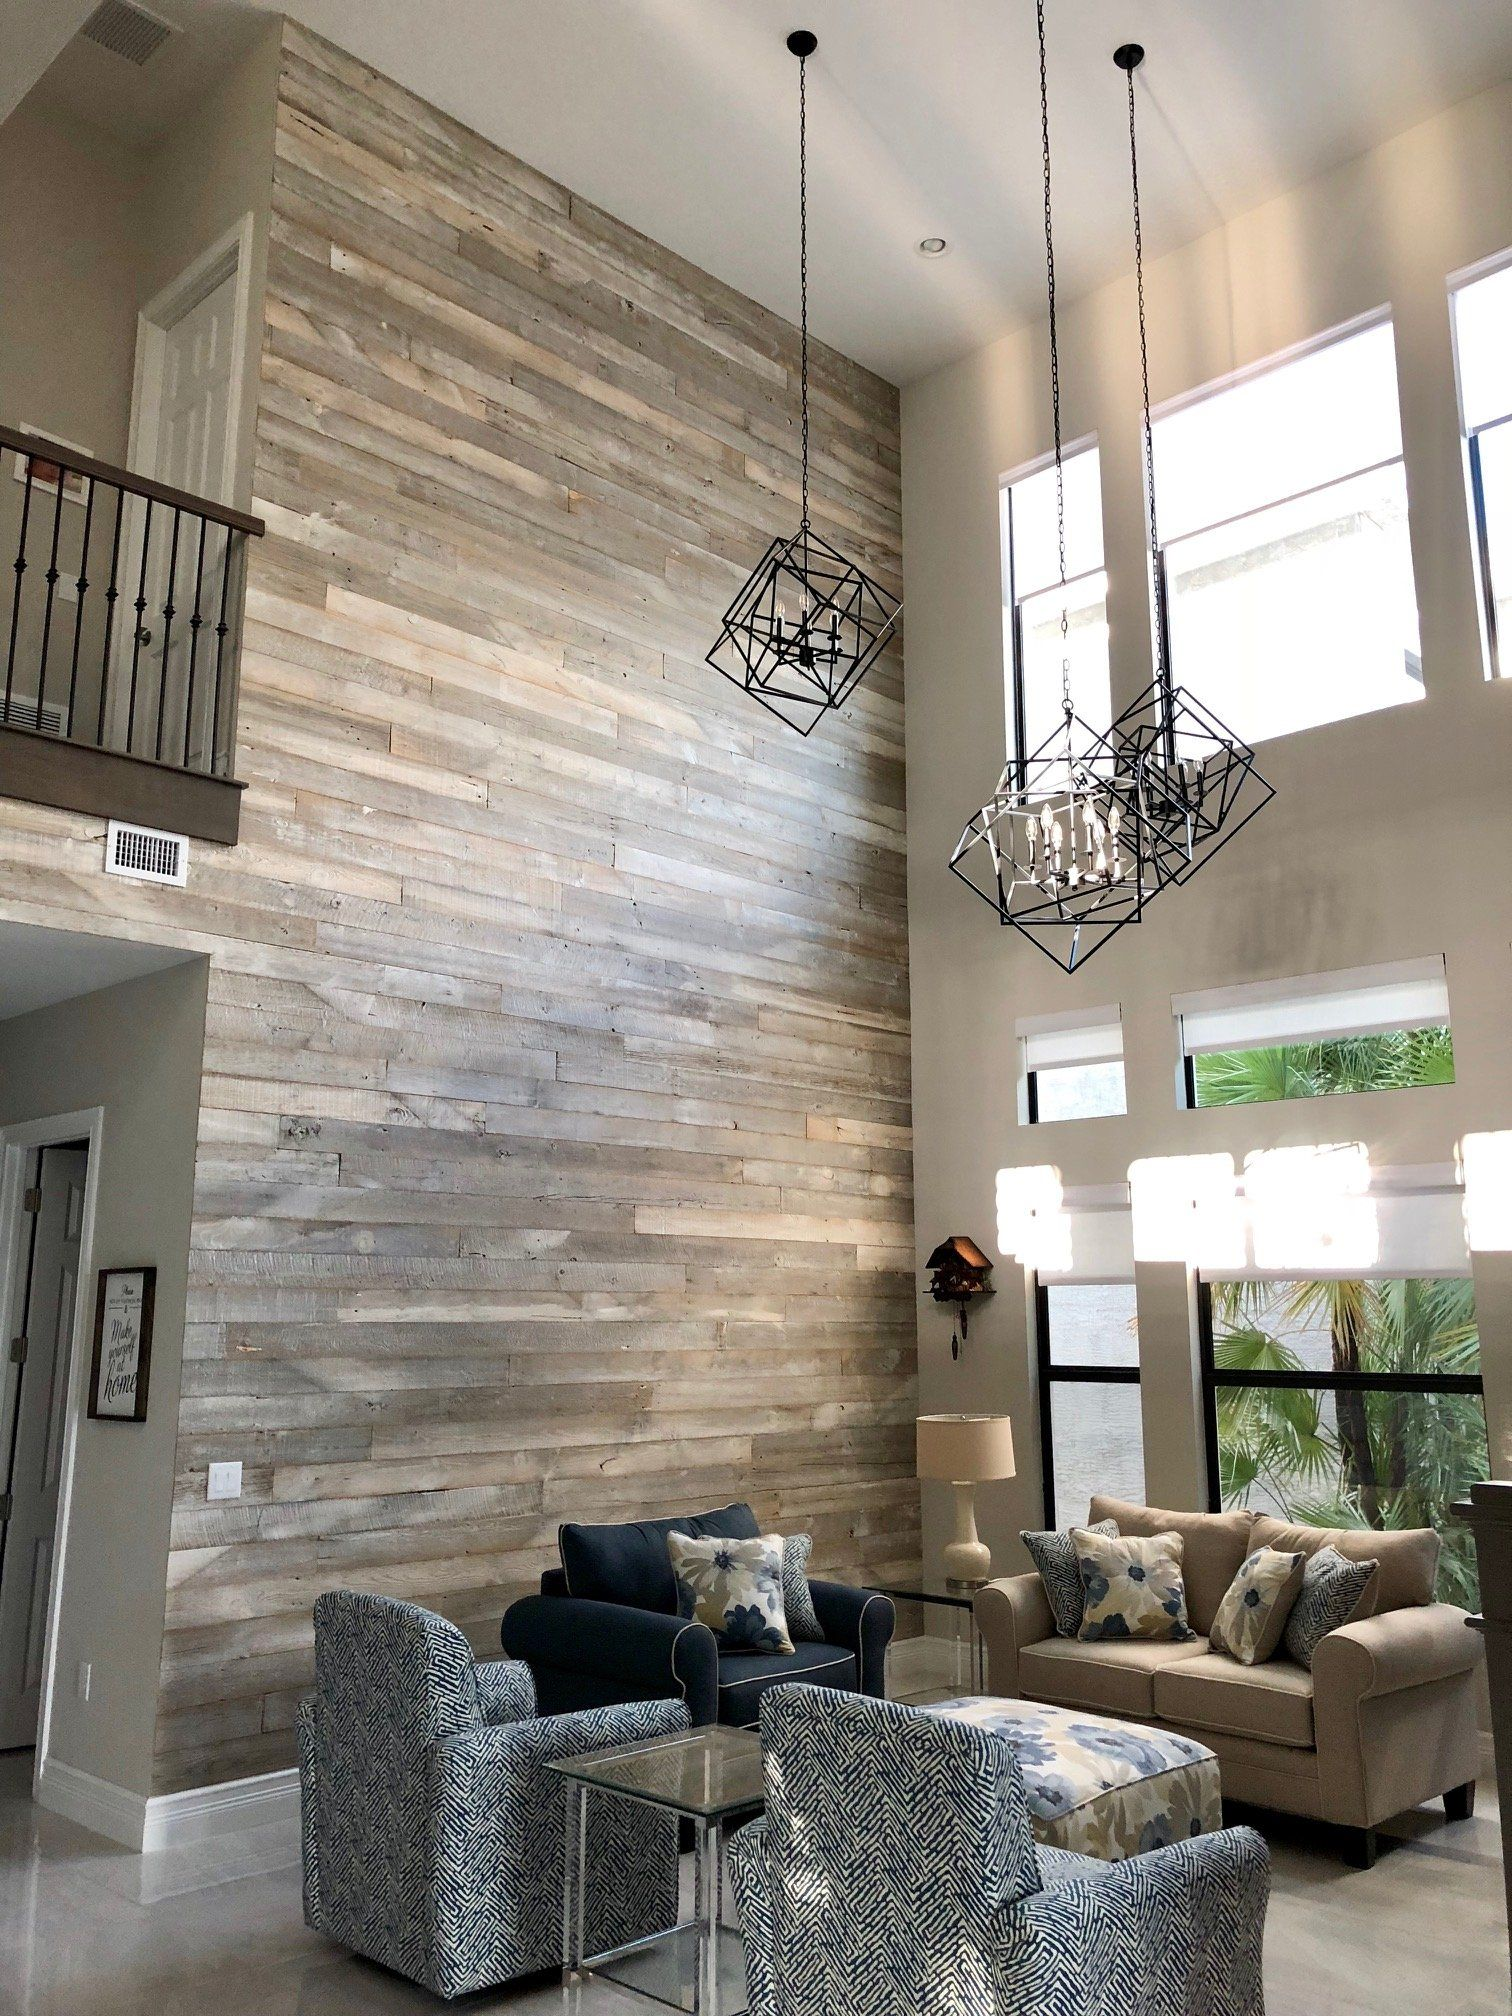 Reclaimed Wood Planks Sundance White 20 Square Feet Accent Walls In Living Room Reclaimed Wood Accent Wall Reclaimed Wood Paneling